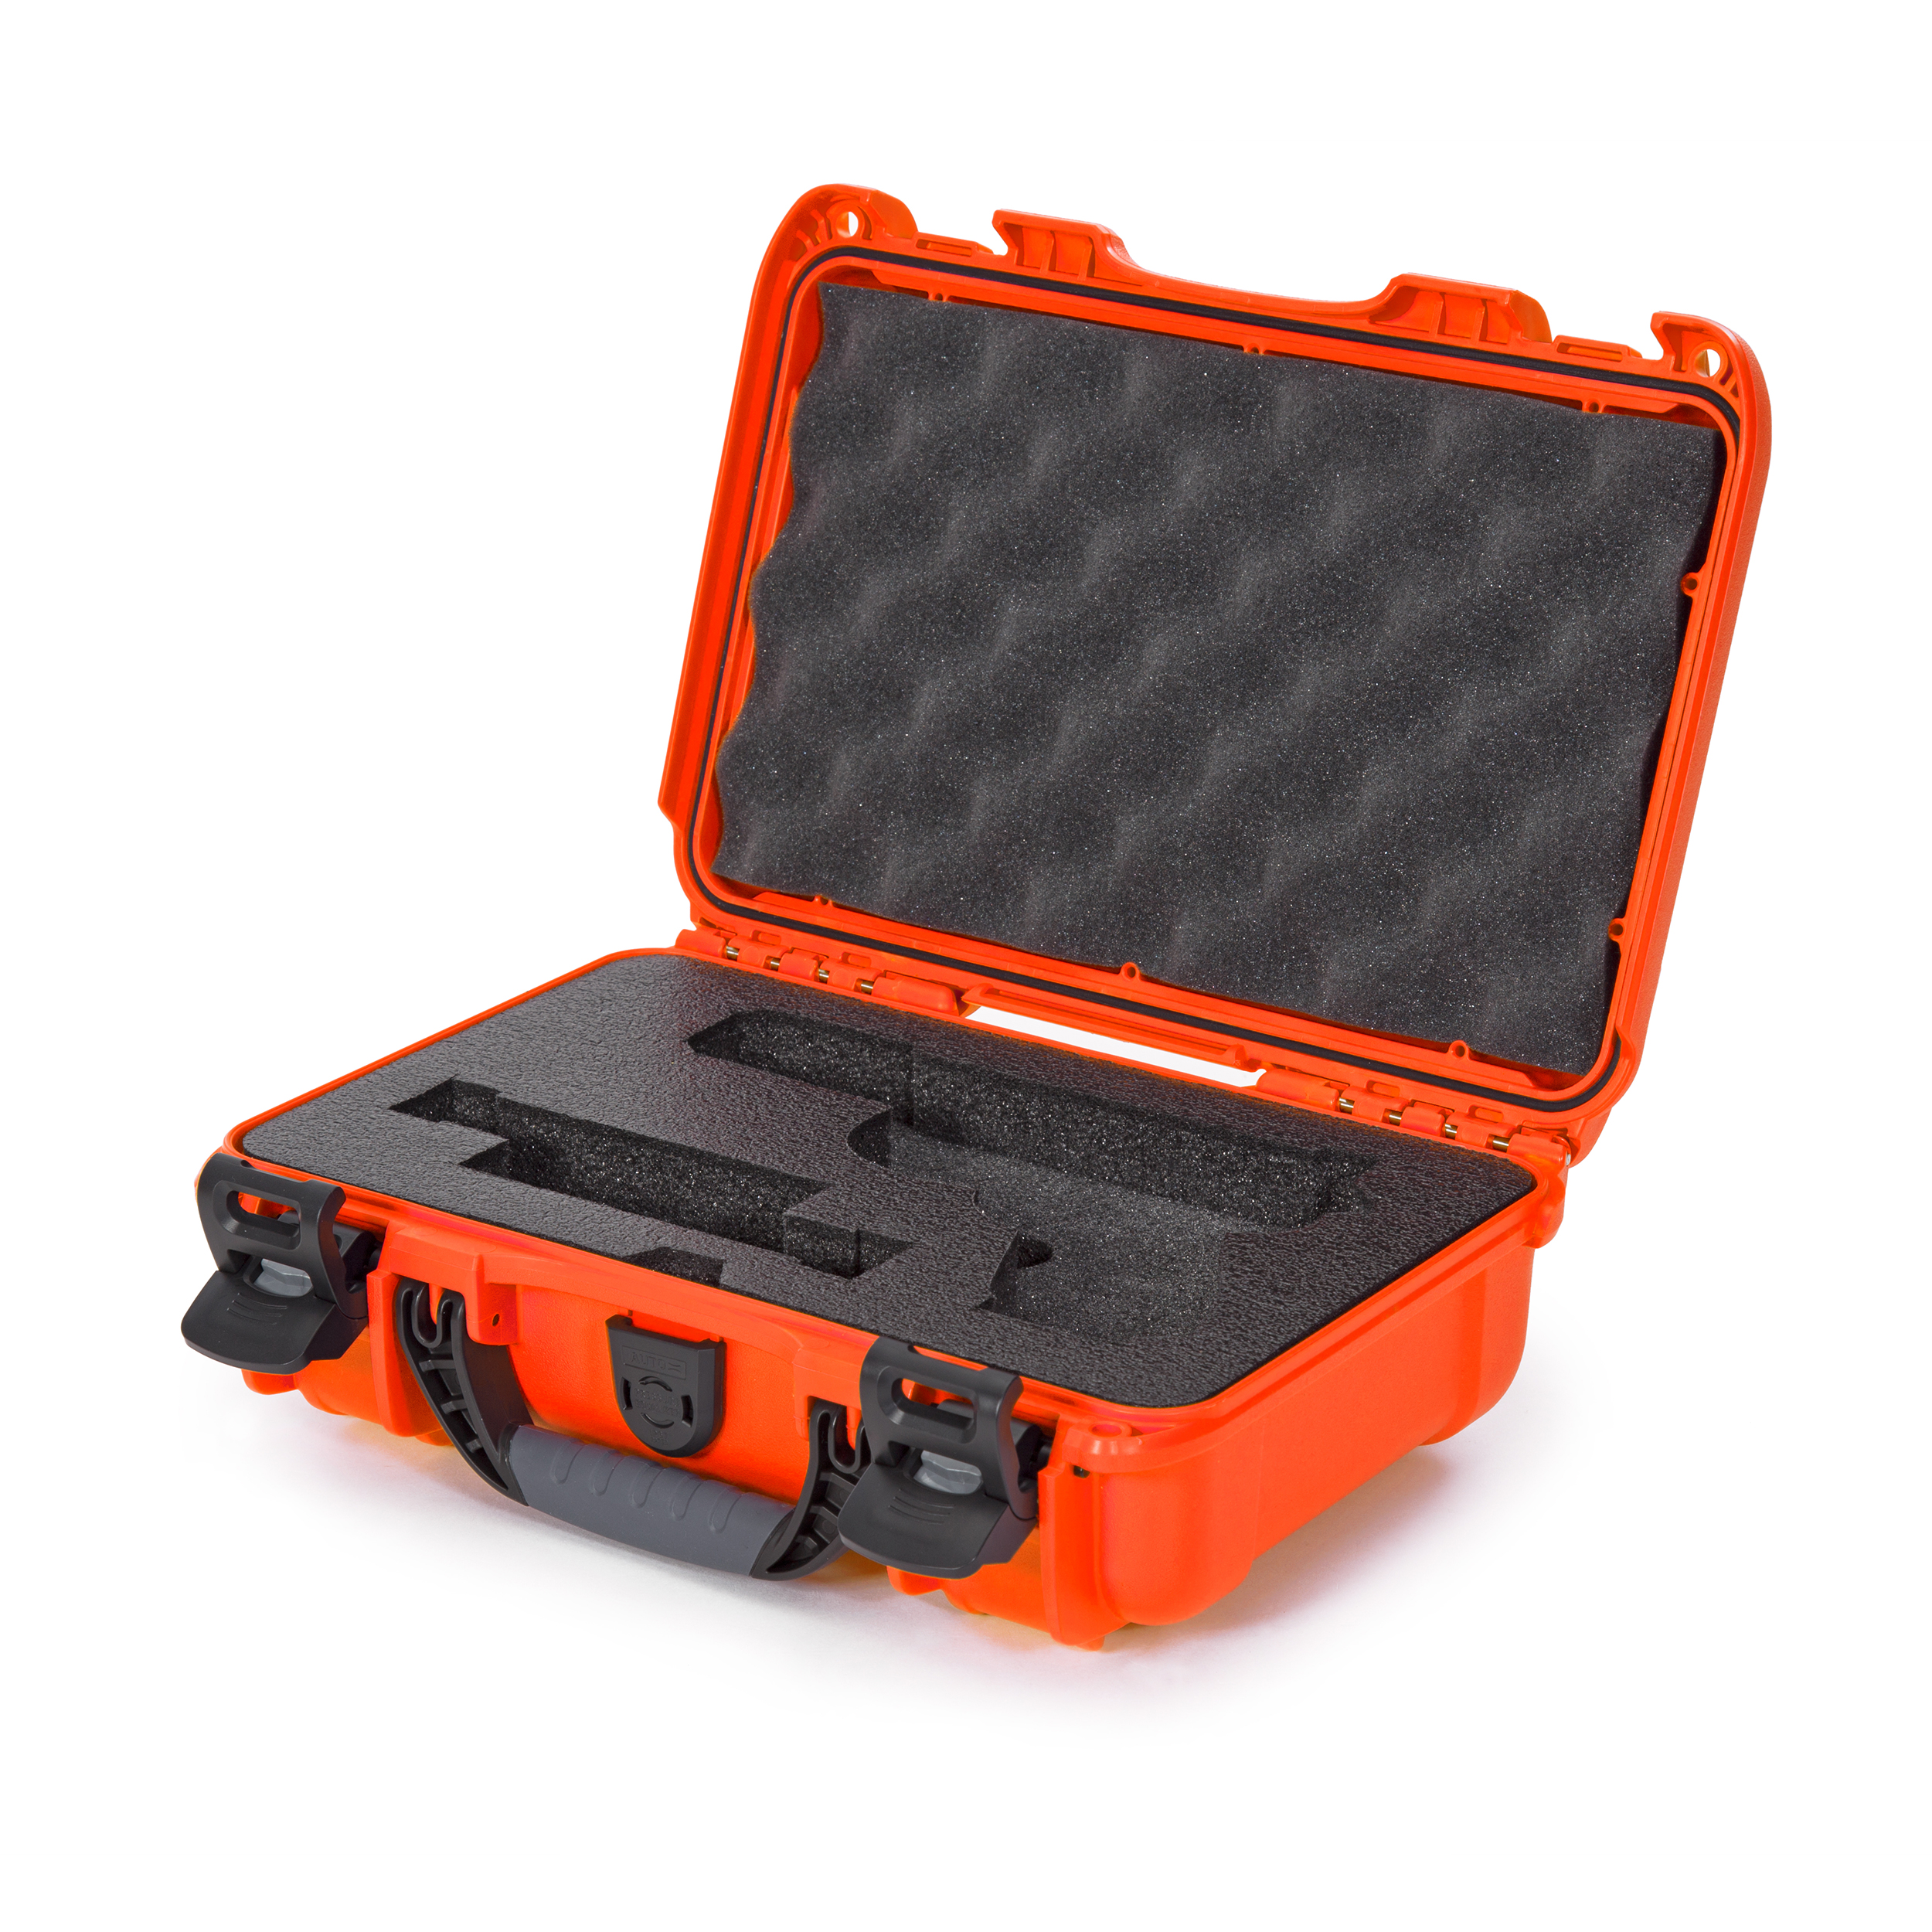 Nanuk 909 Waterproof Professional Glock/Gun Case, Military Approved with Foam Insert - Black